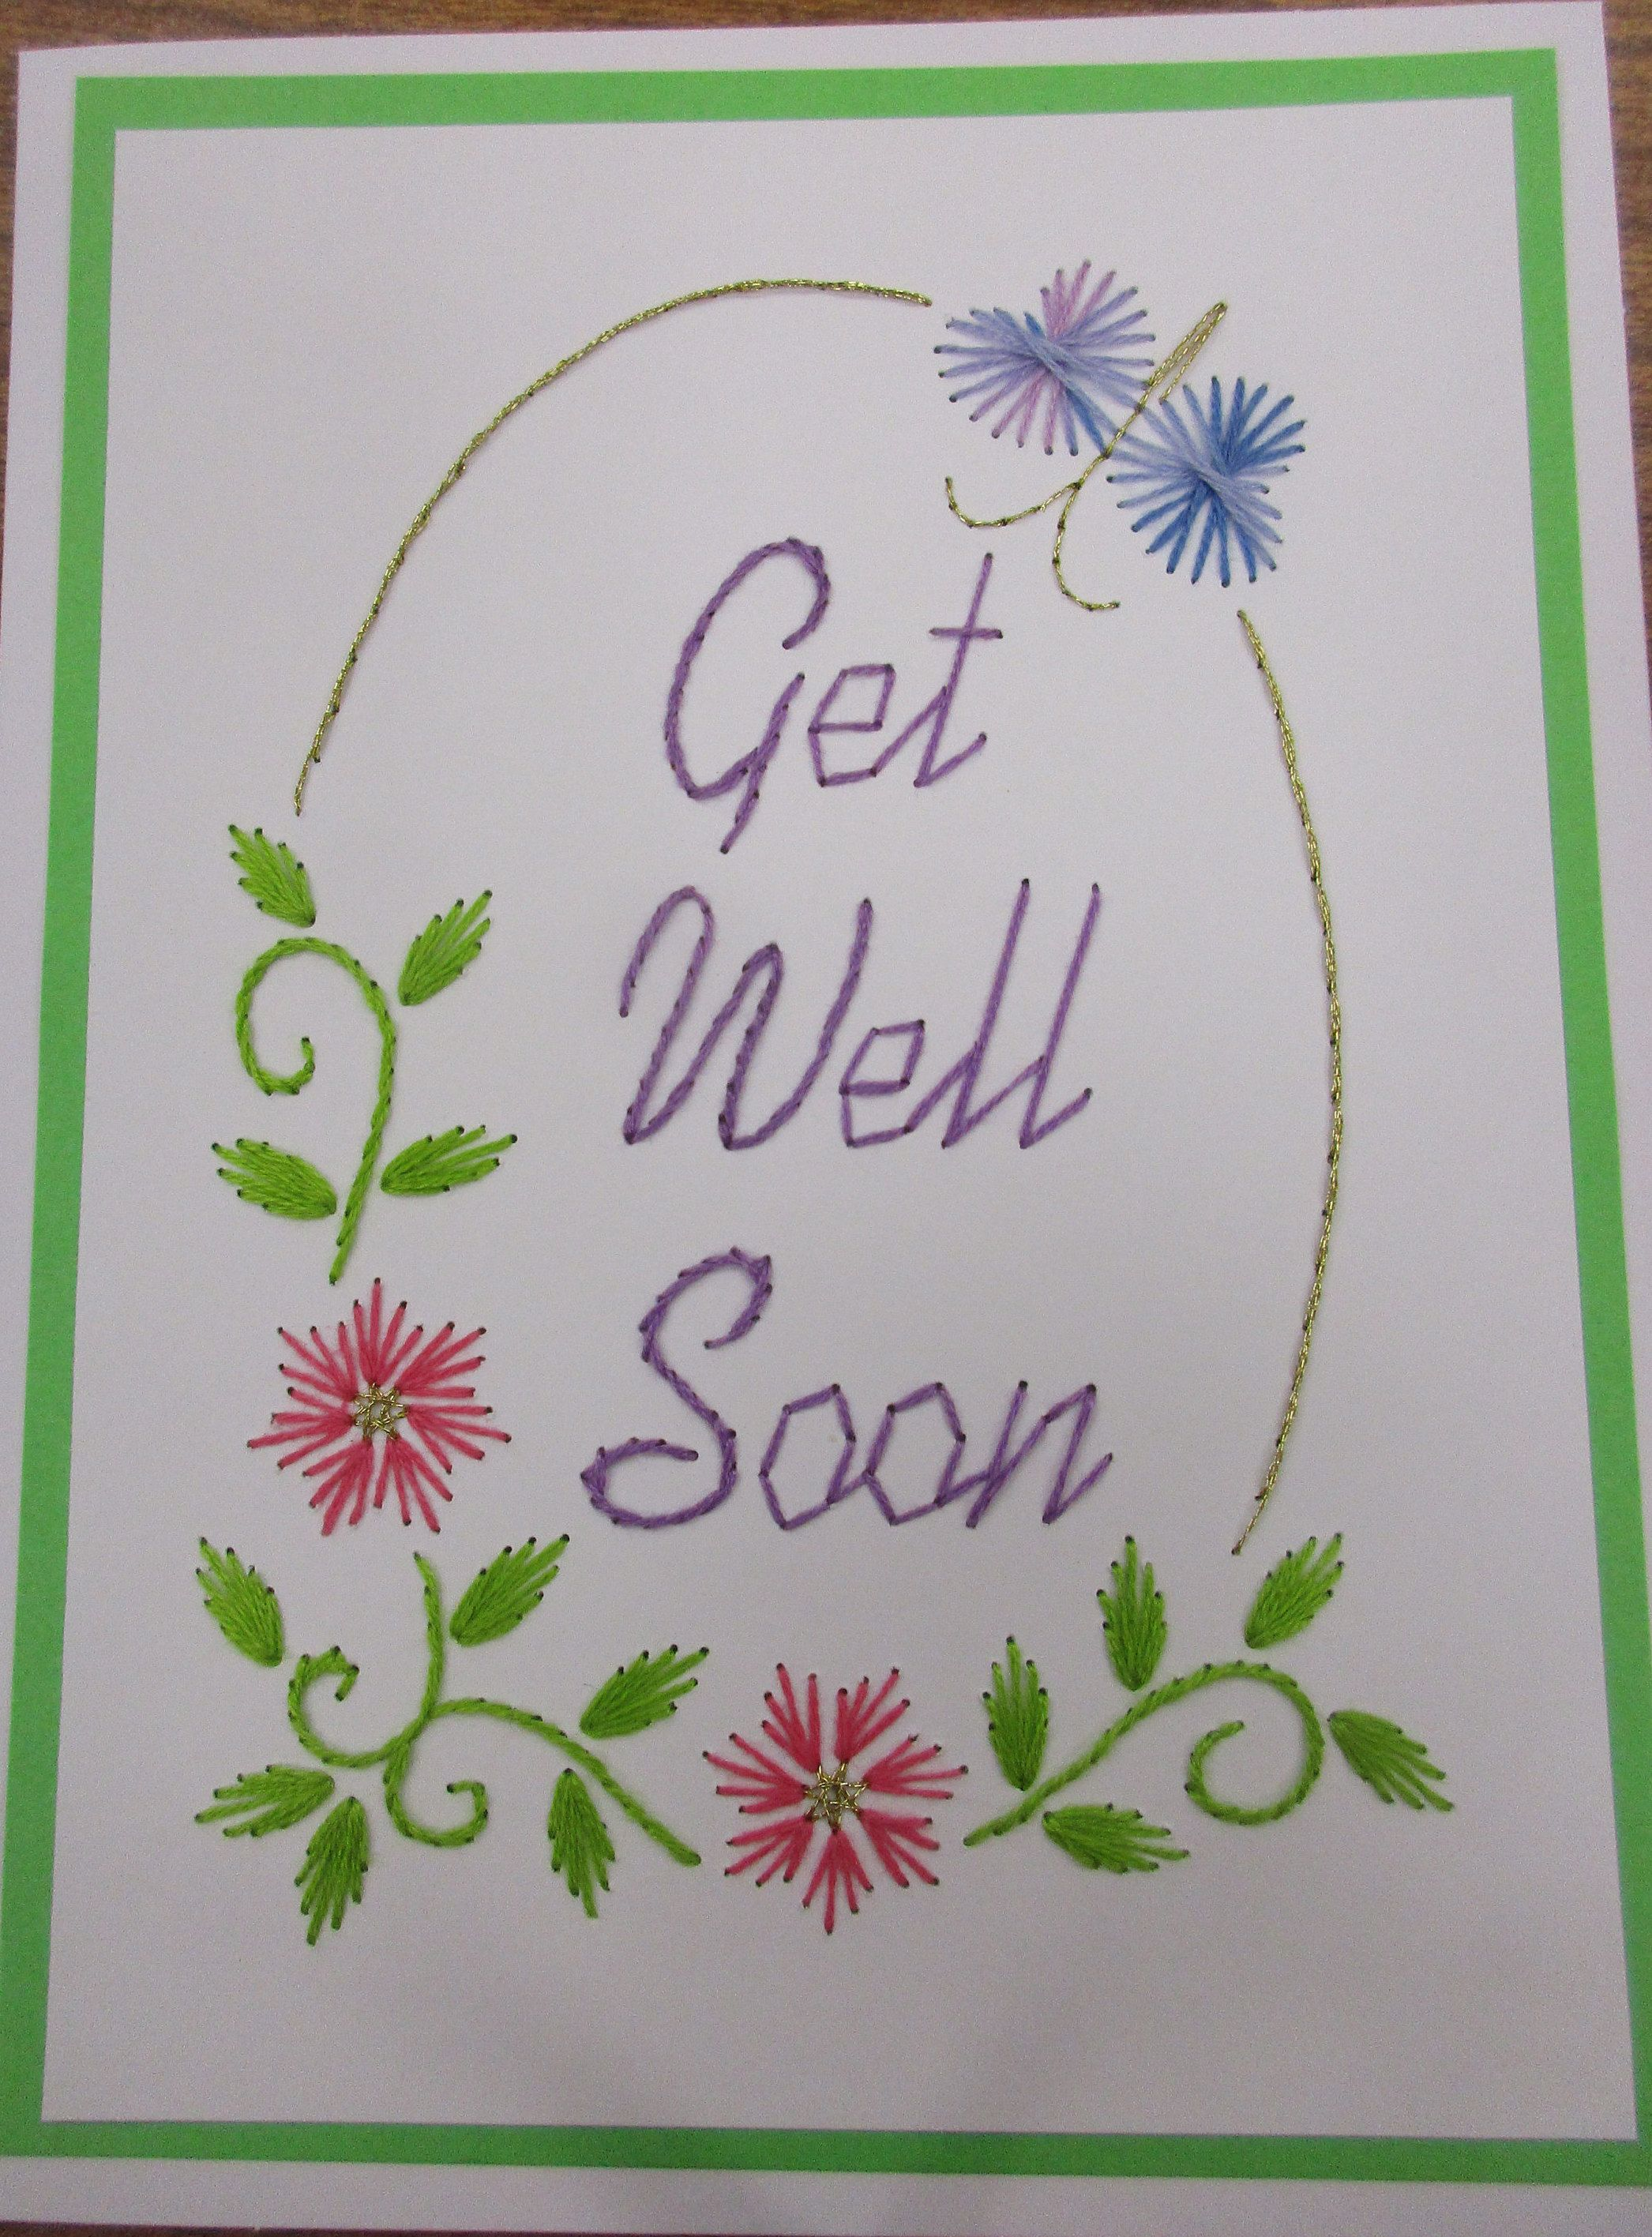 Calmly Embroidered Floral Get Well Card By Reneespixiedust On Etsy Embroidered Floral Get Well Card By Reneespixiedust On Etsy Get Well Cards To Make Get Well Cards Sayings cards Get Well Cards